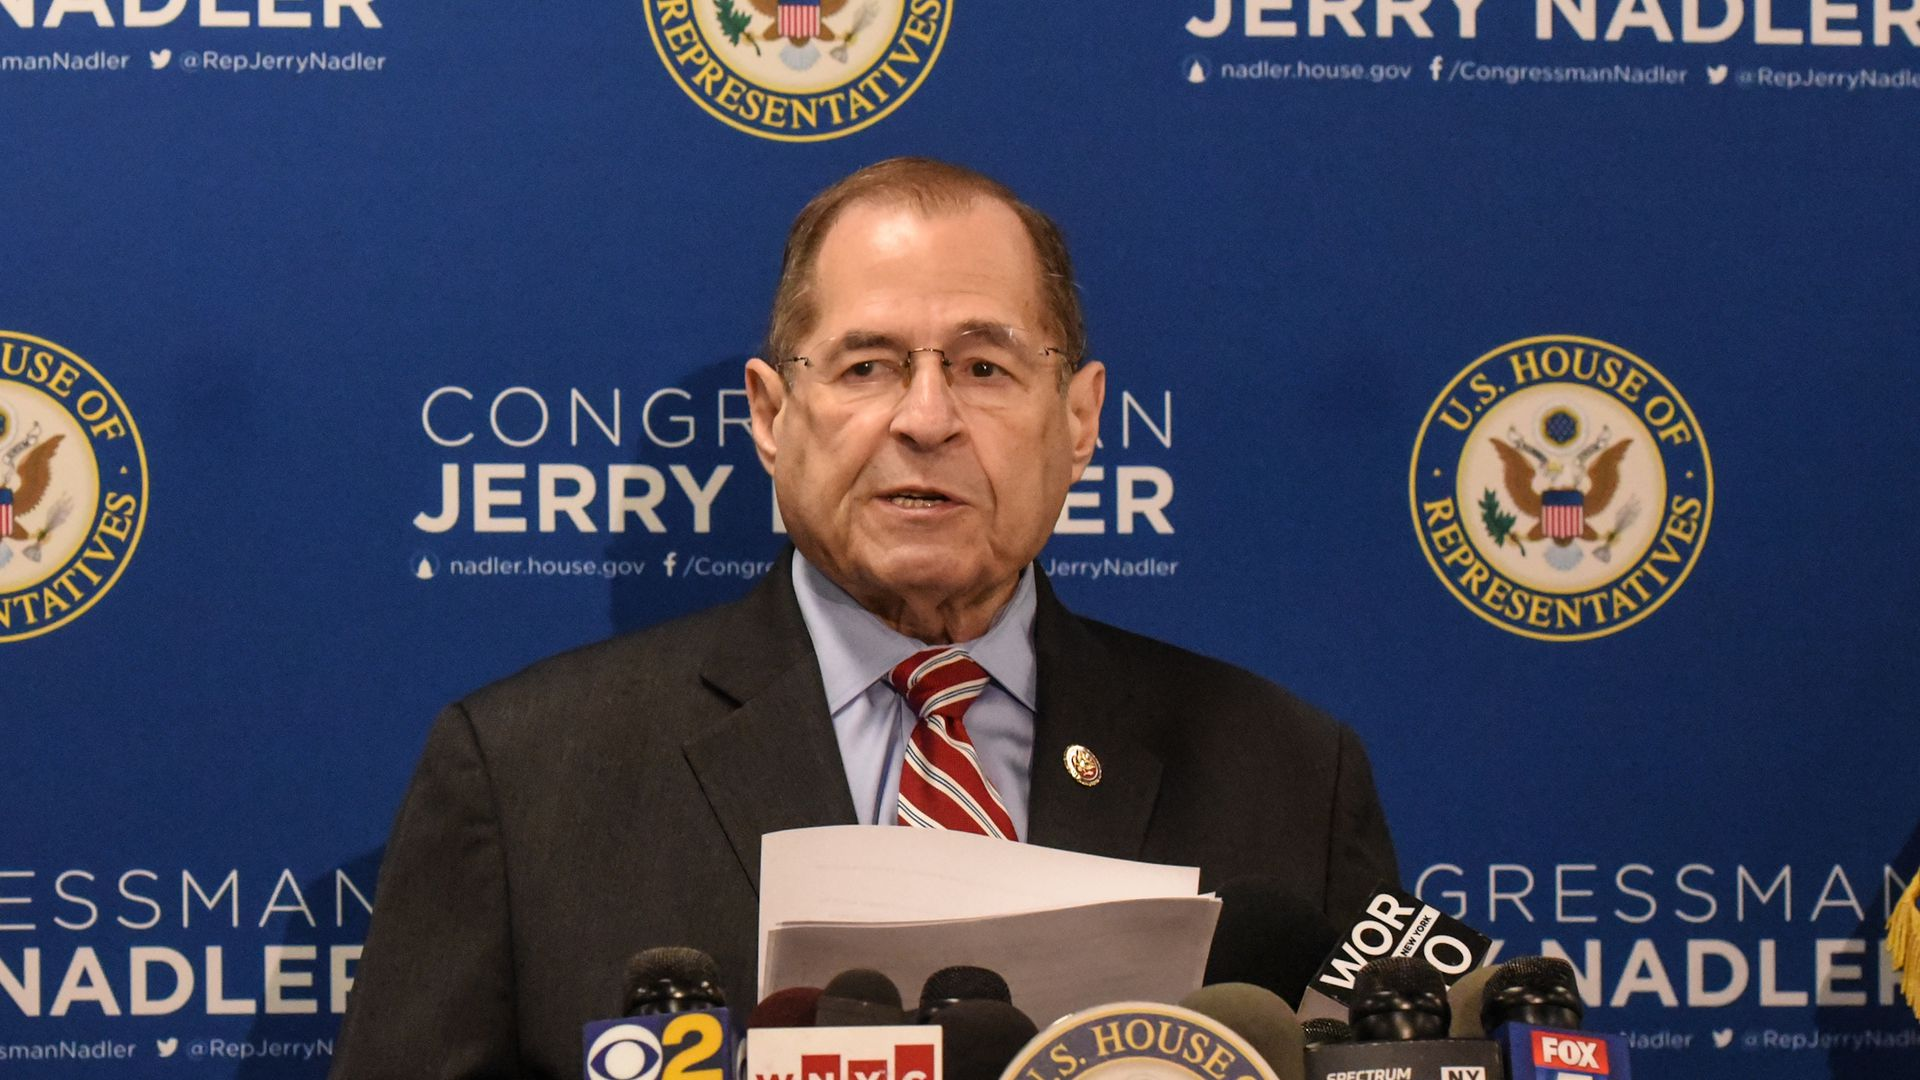 House Judiciary Committee Rep. Jerry Nadler (D-NY) speaks to members of the press on May 29